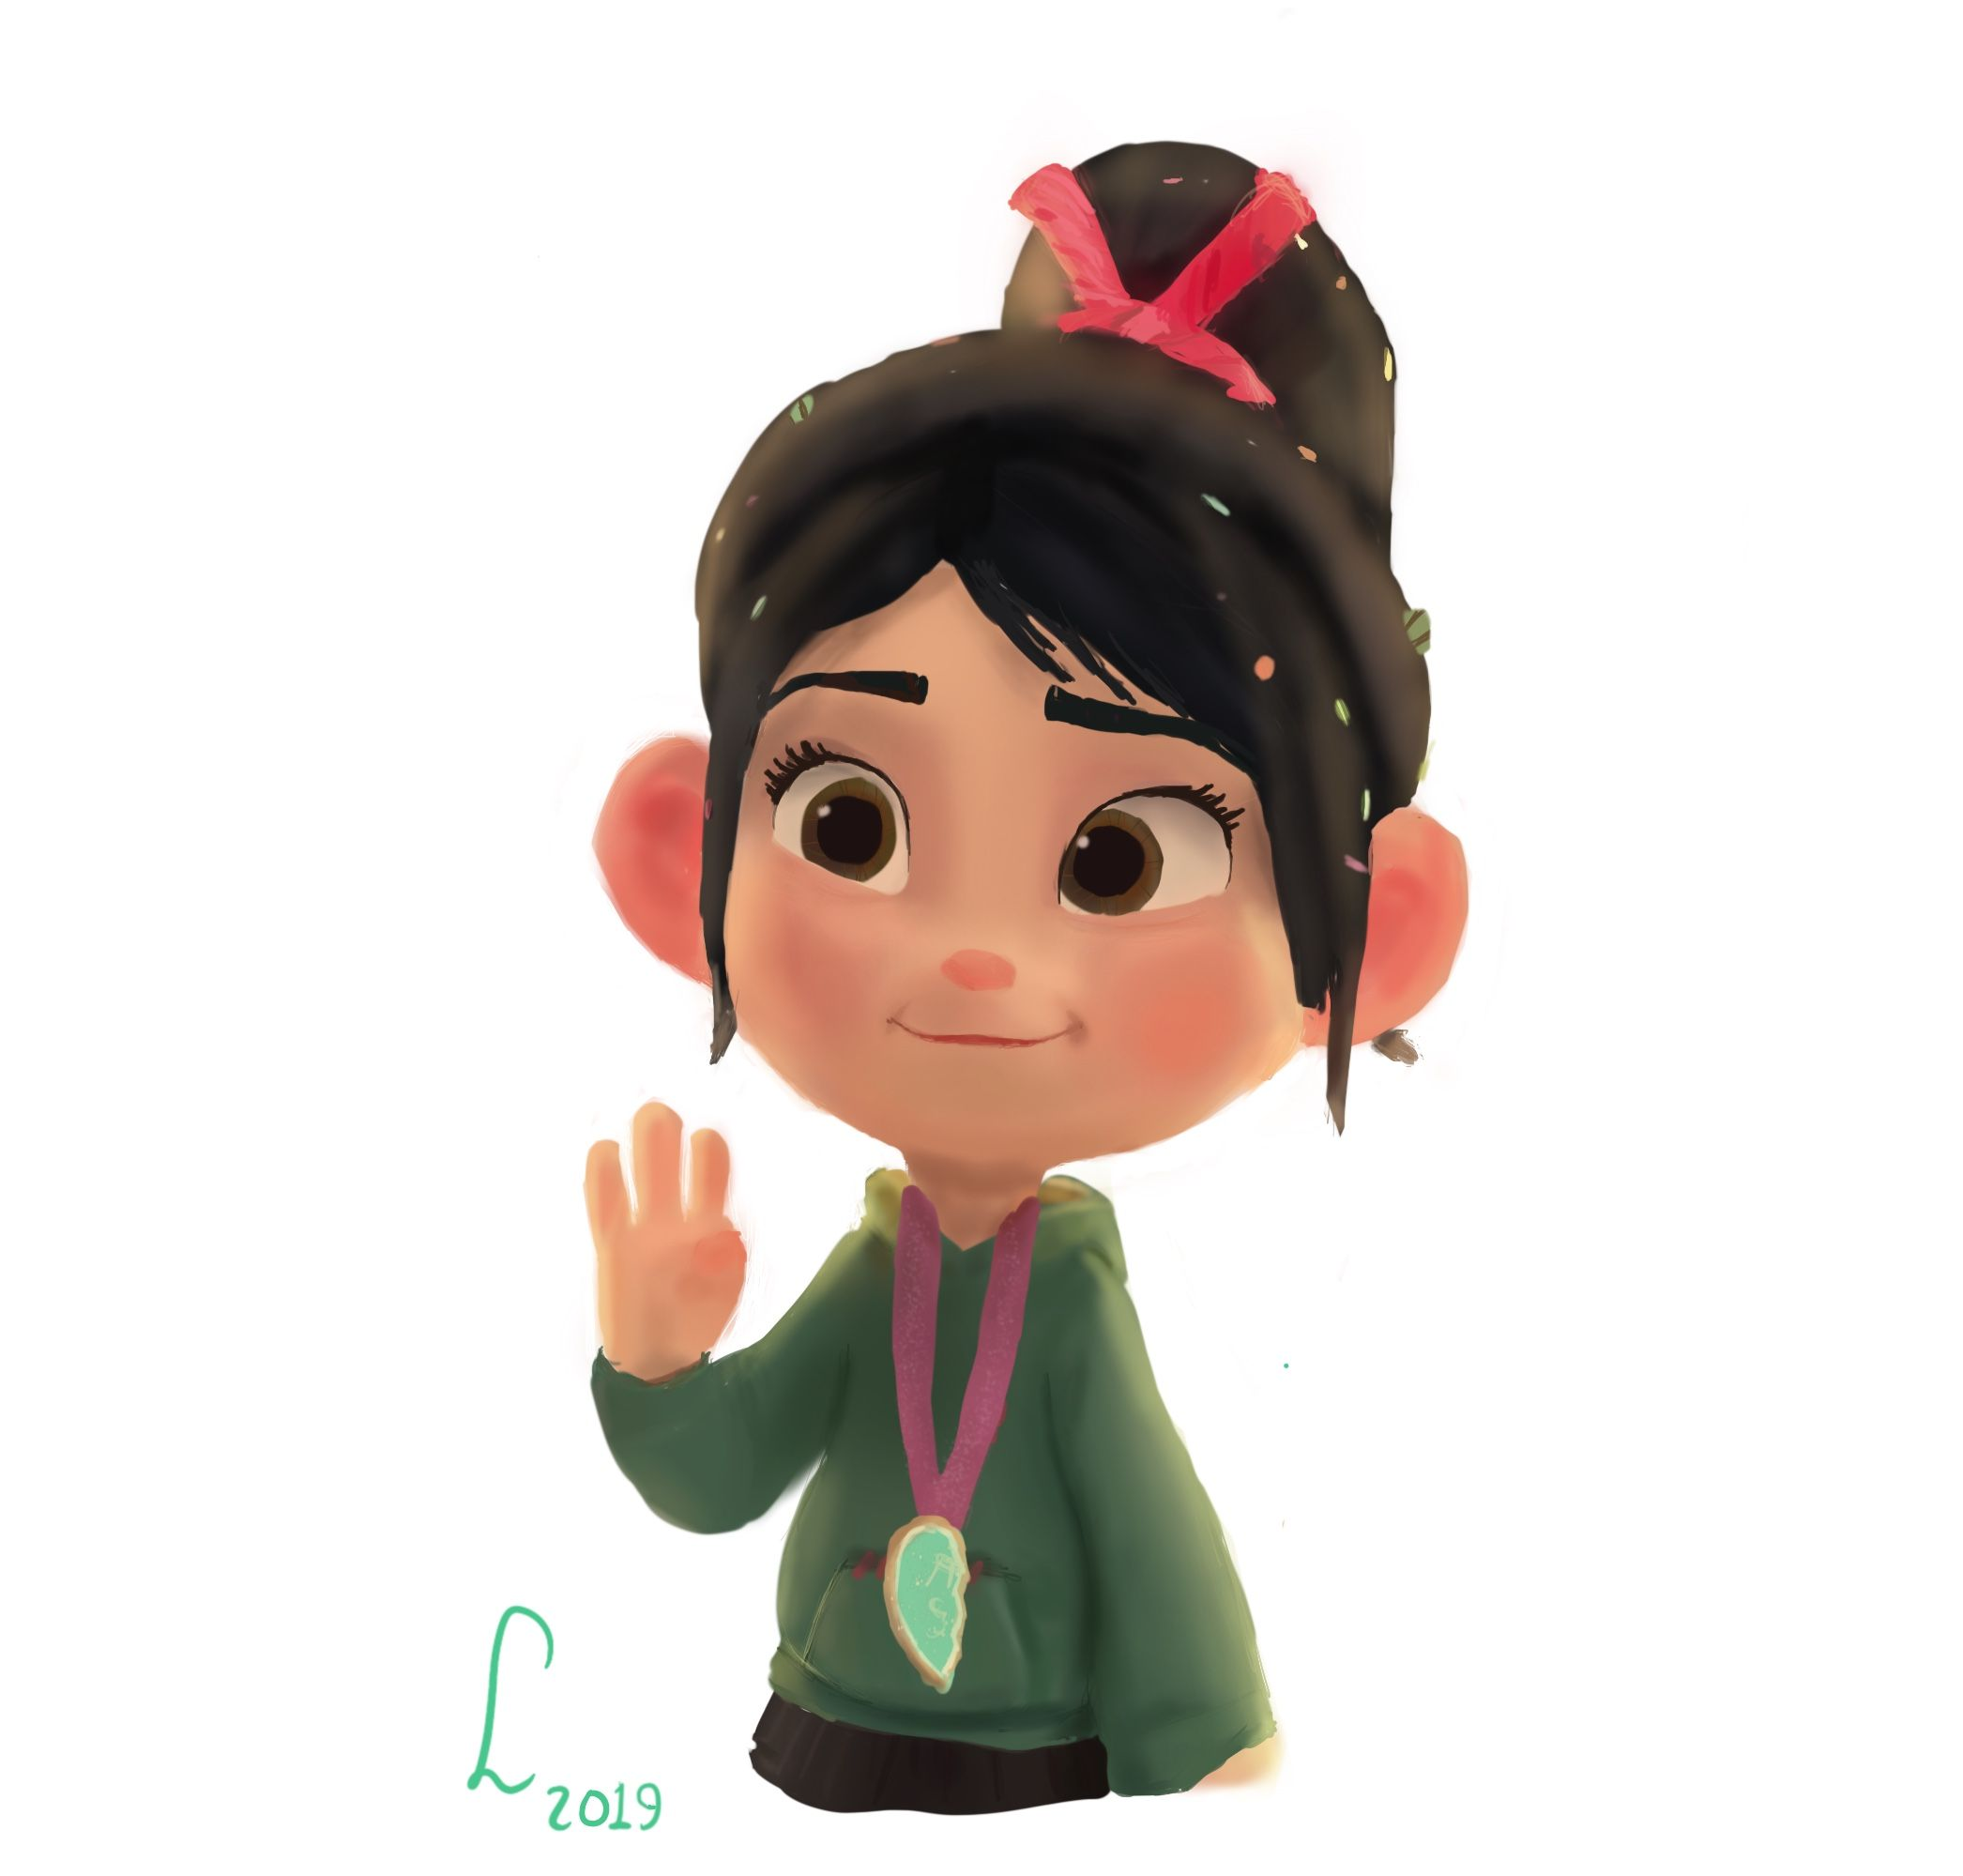 Fanart Of Vanellope From Ralph Breaks The Internet